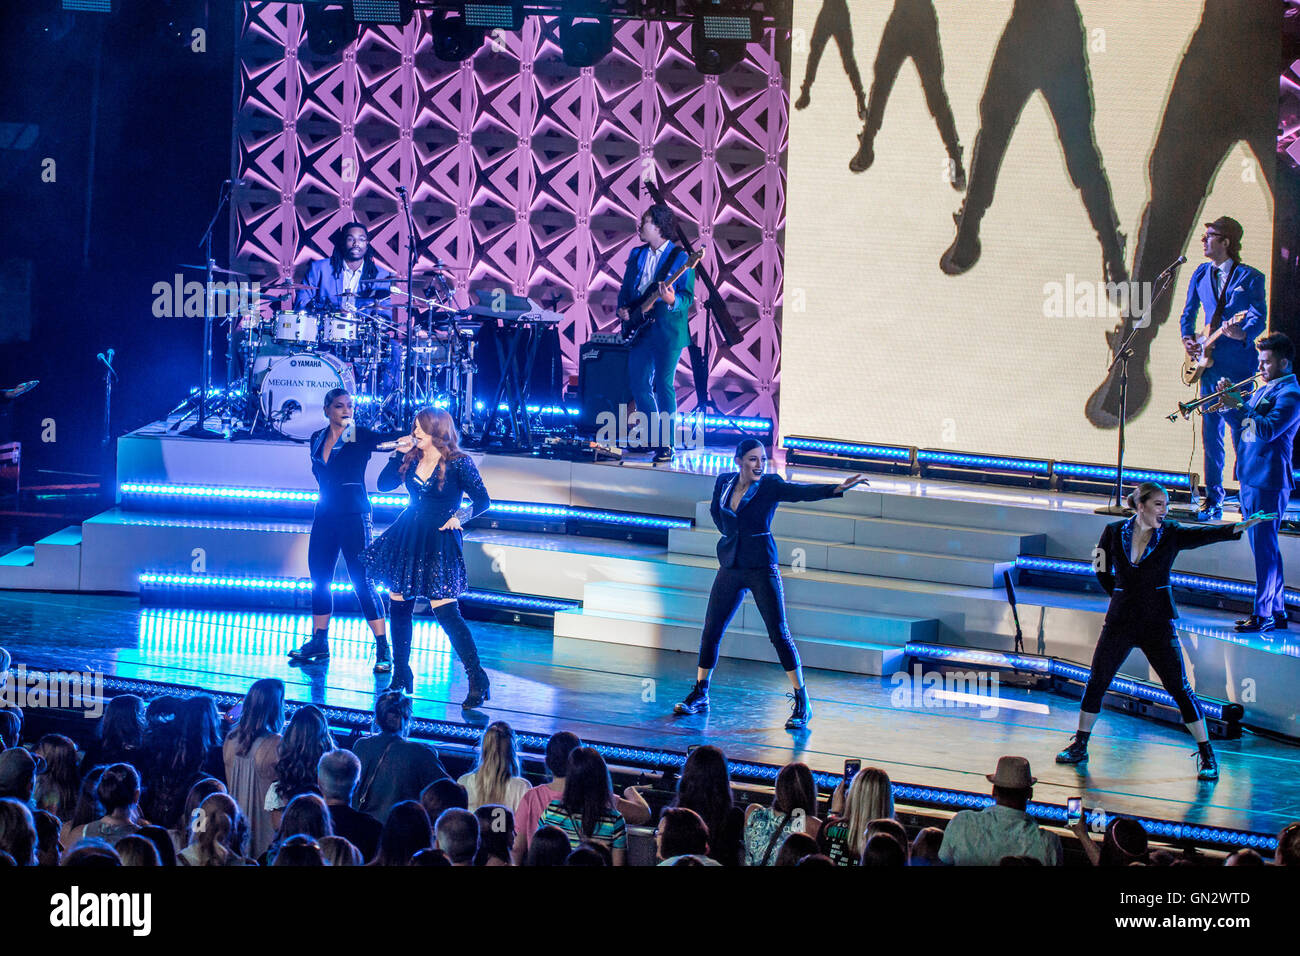 Rochester Hills, Michigan, USA. 8th Aug, 2016. MEGHAN TRAINOR performing on The Untouchable Tour at the Meadow Brook - Stock Image